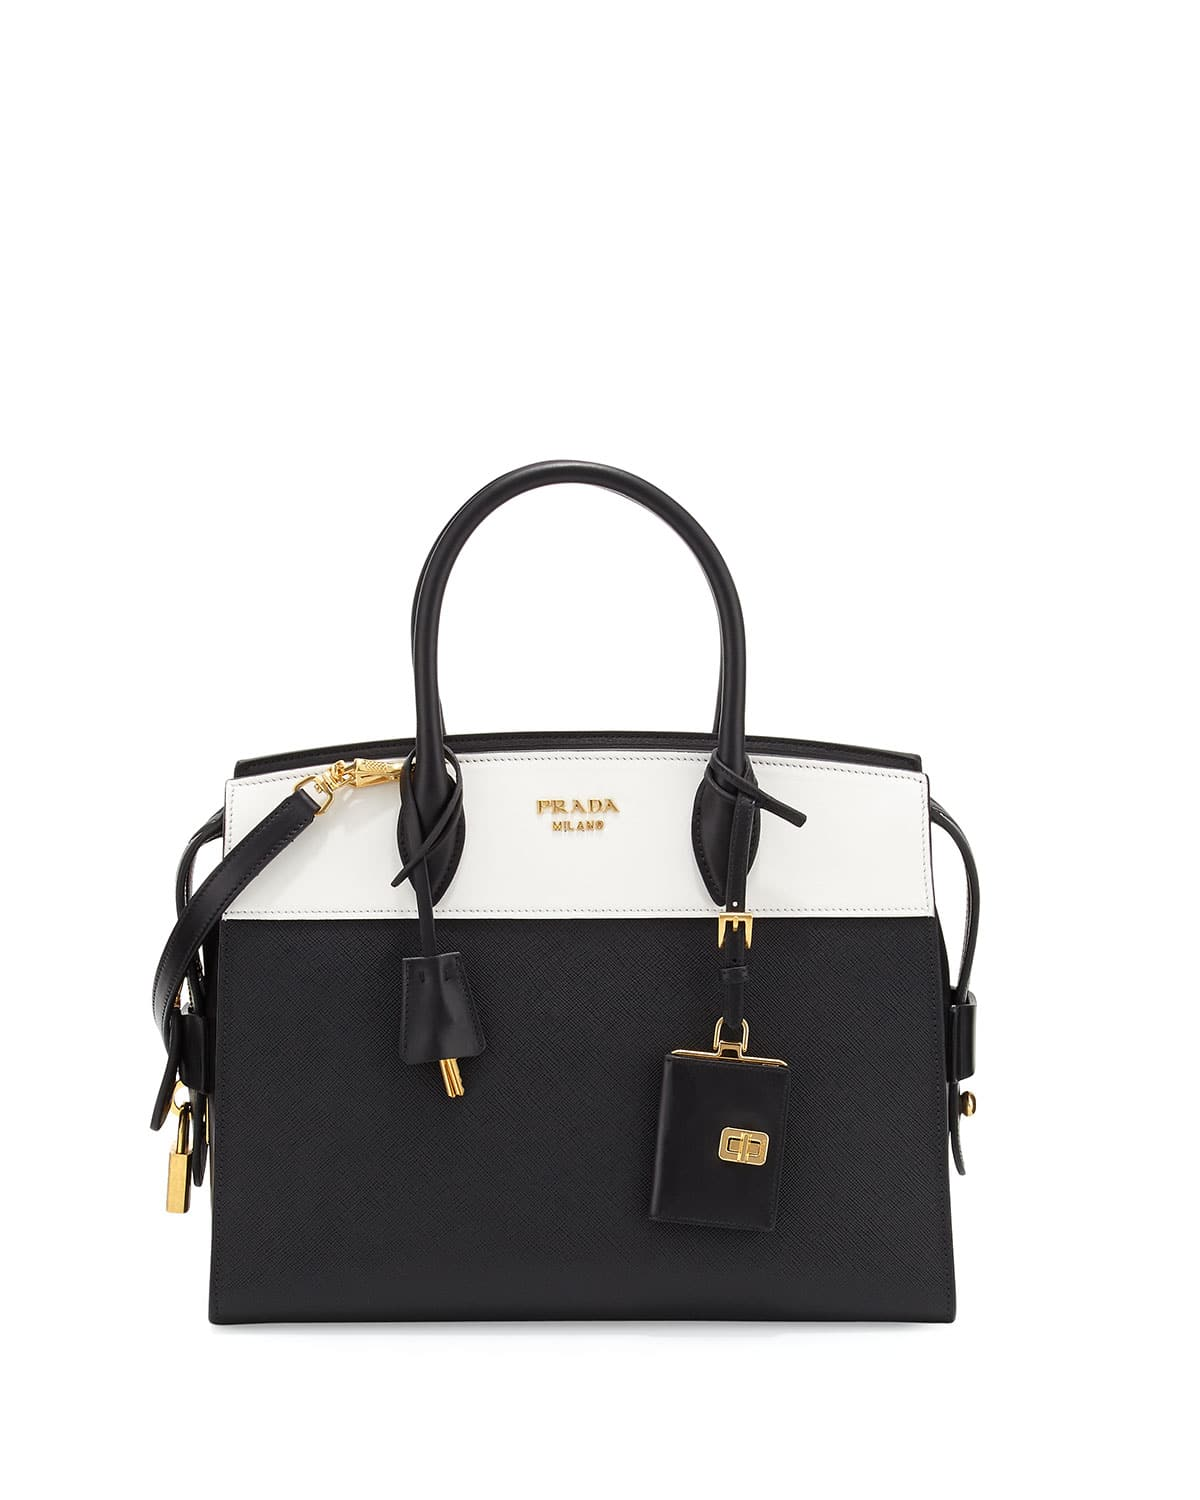 Prada Black White Medium Esplanade Bag